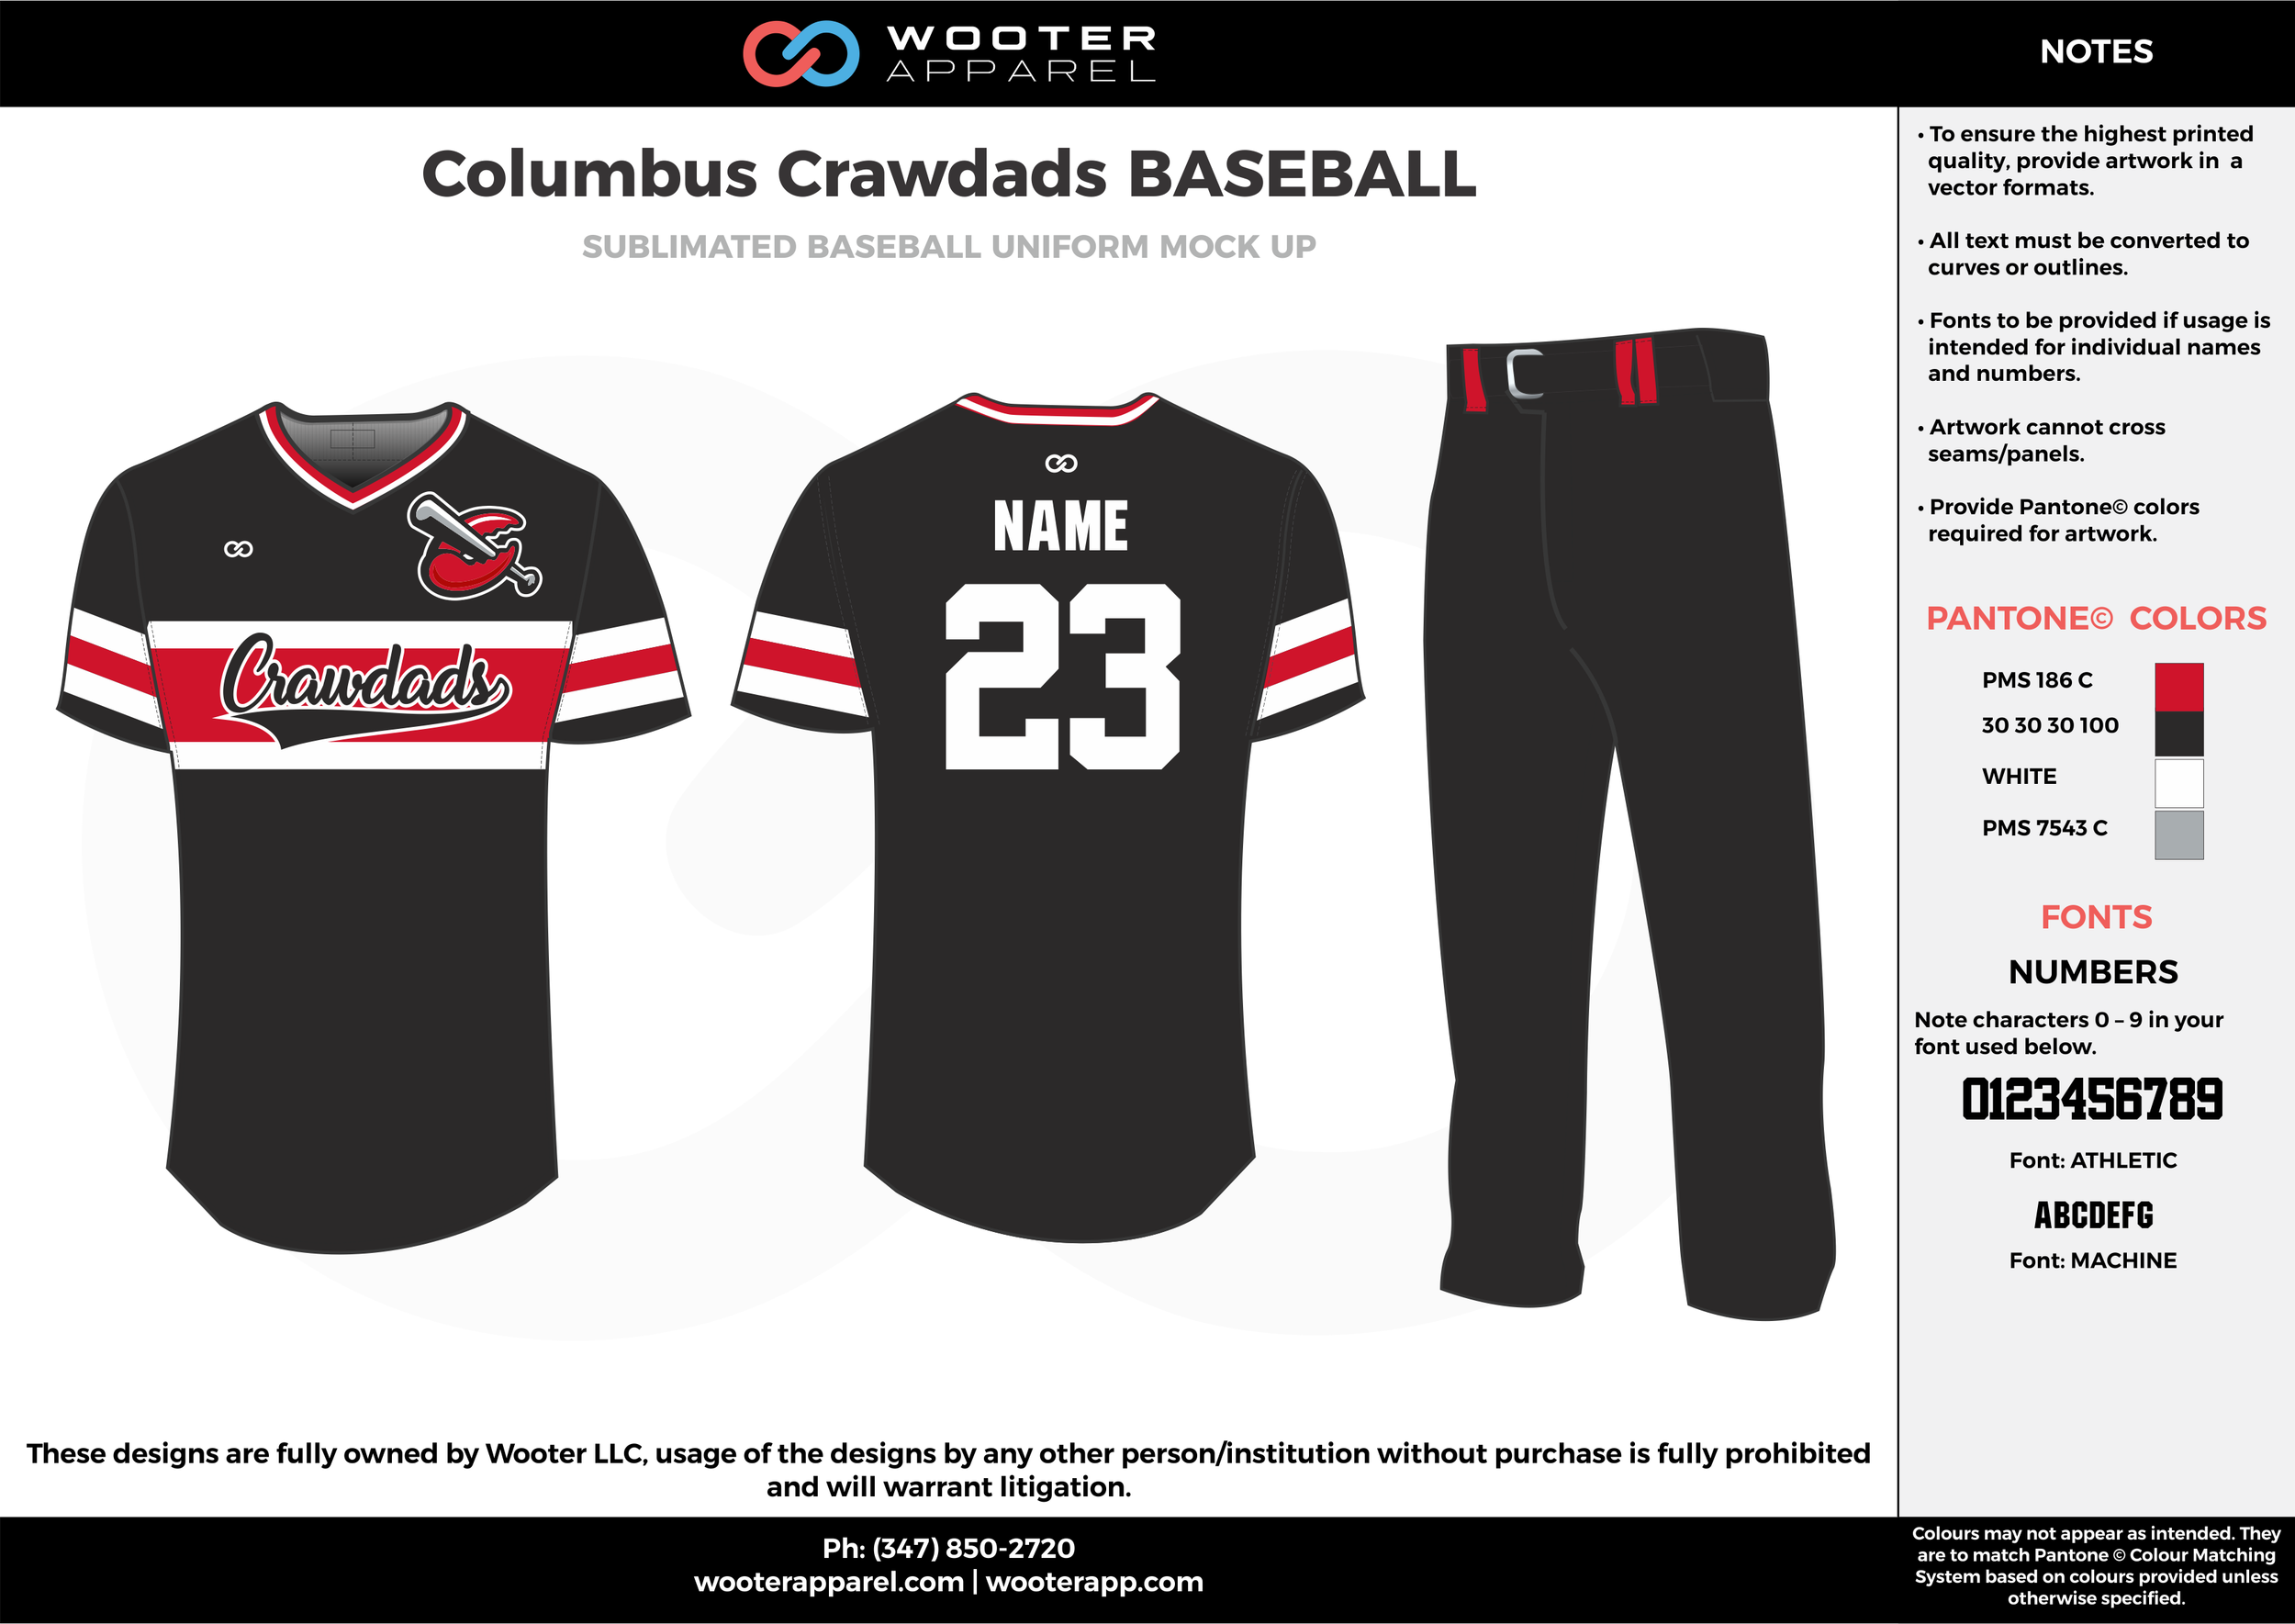 COLUMBUS CRAWDADS BASEBALL black red white gray baseball uniforms jerseys pants